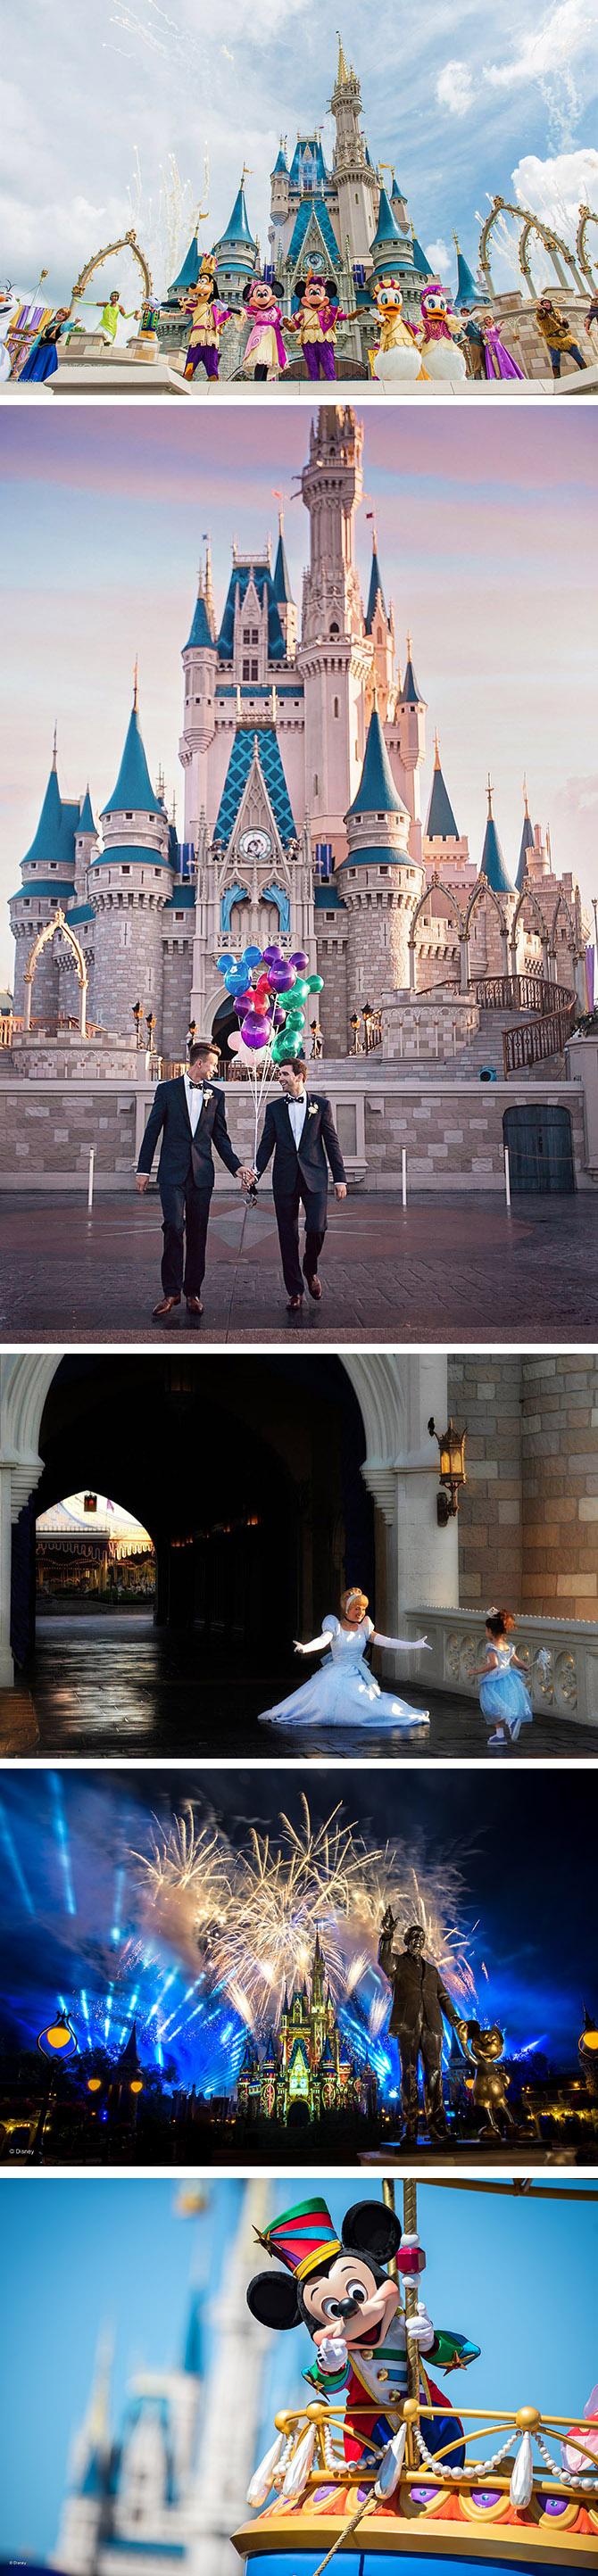 LGBT Weddings Magic Kingdom Vacations in Orlando Florida